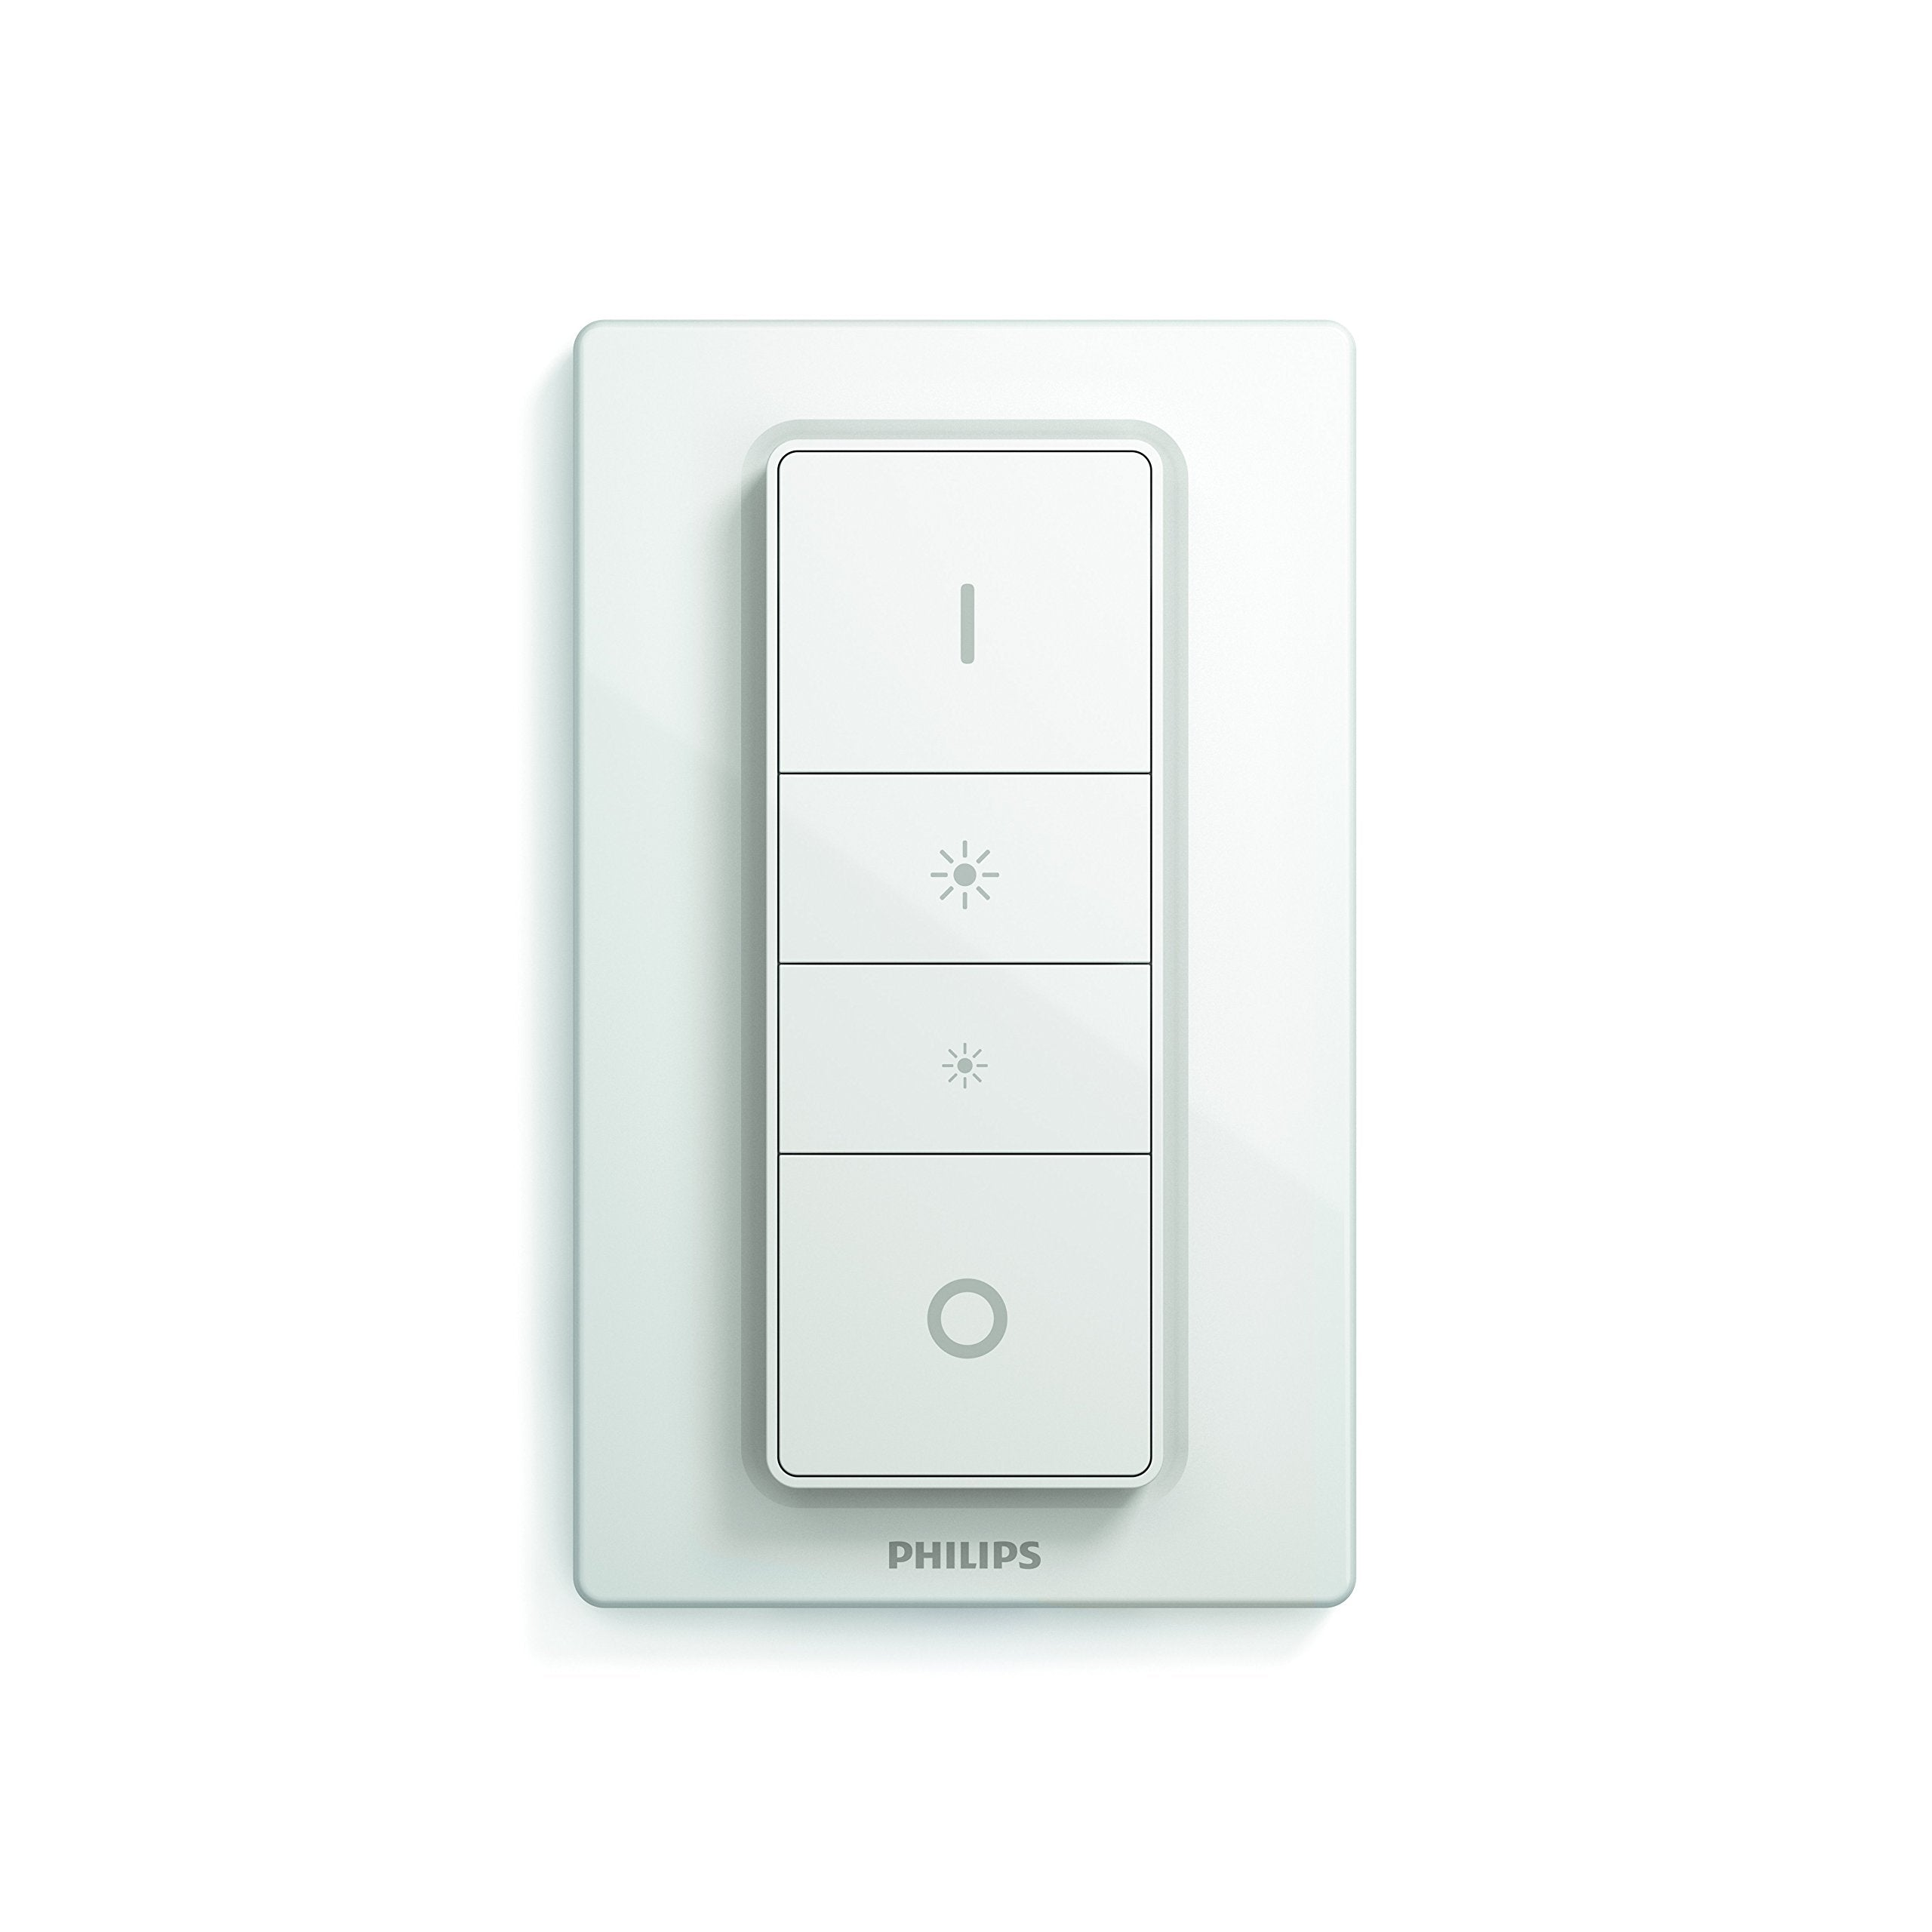 Philips Hue White Ambiance BEING Plafonnier 32 W - Noir (télécommande incluse)